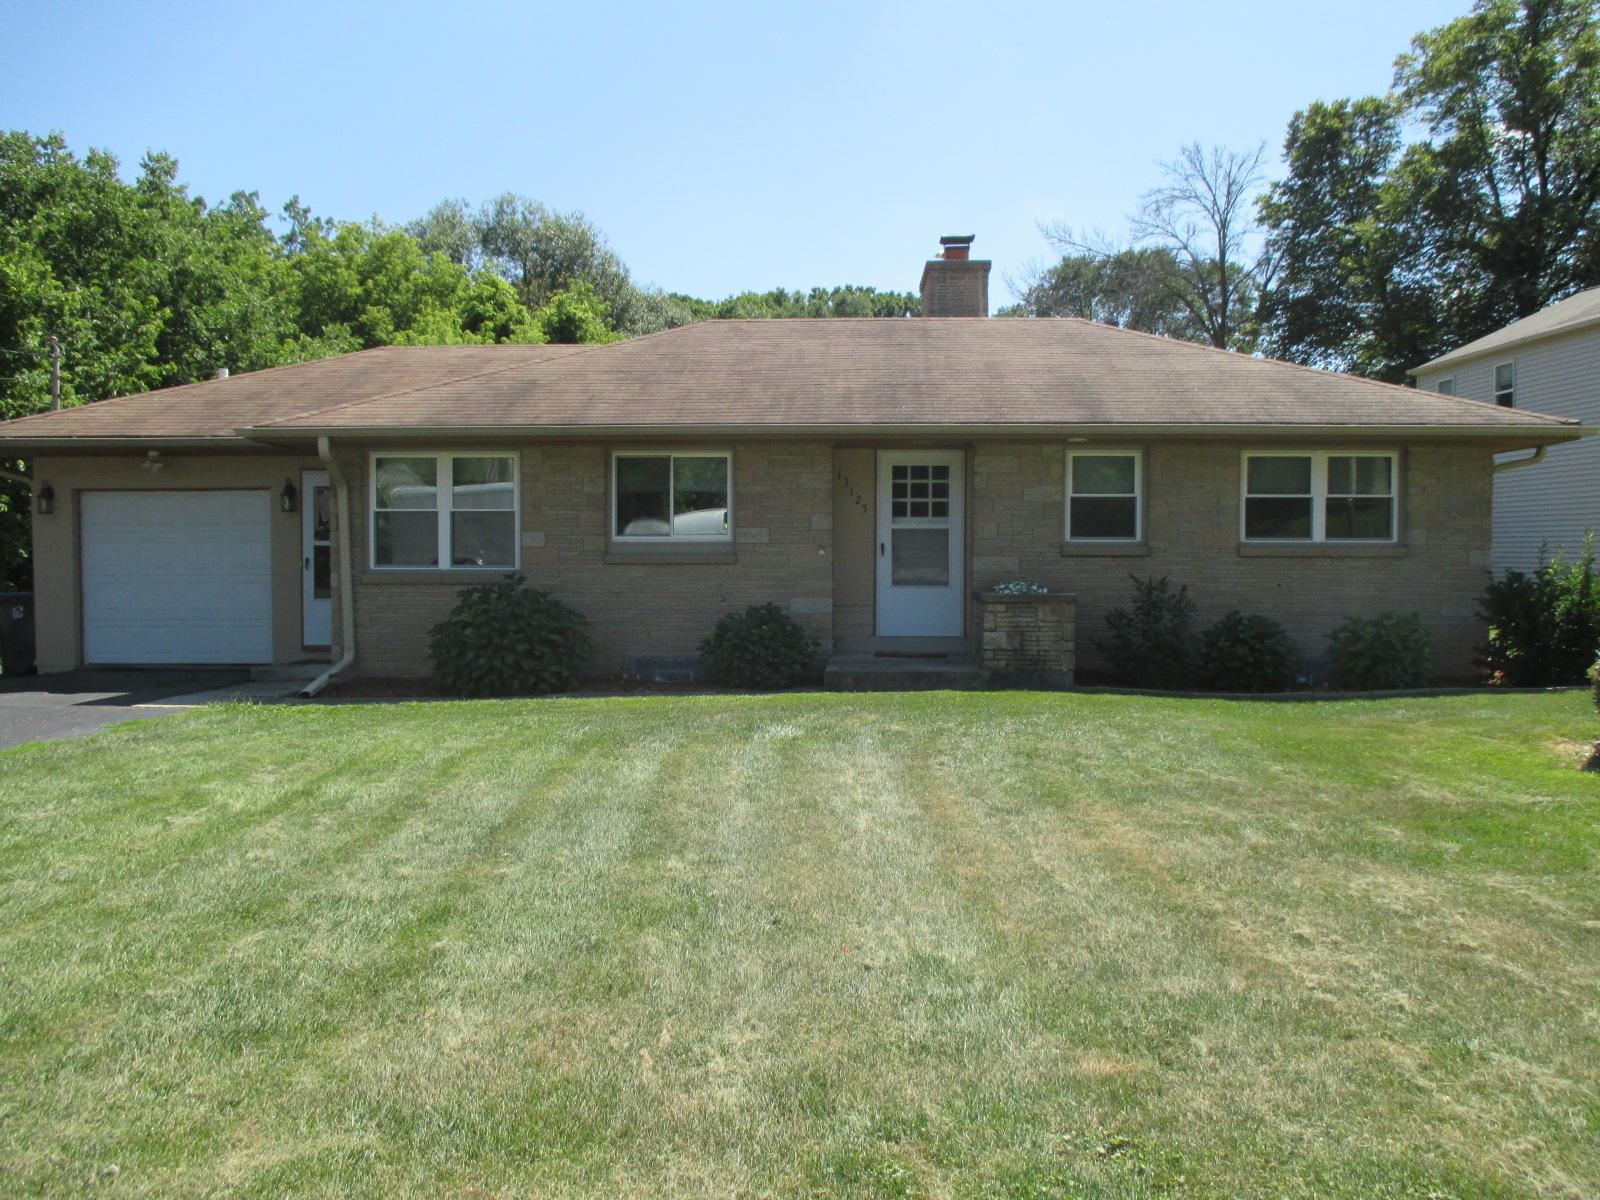 13125 W Cleveland Ave, New Berlin, WI 53151 - #: 1703378